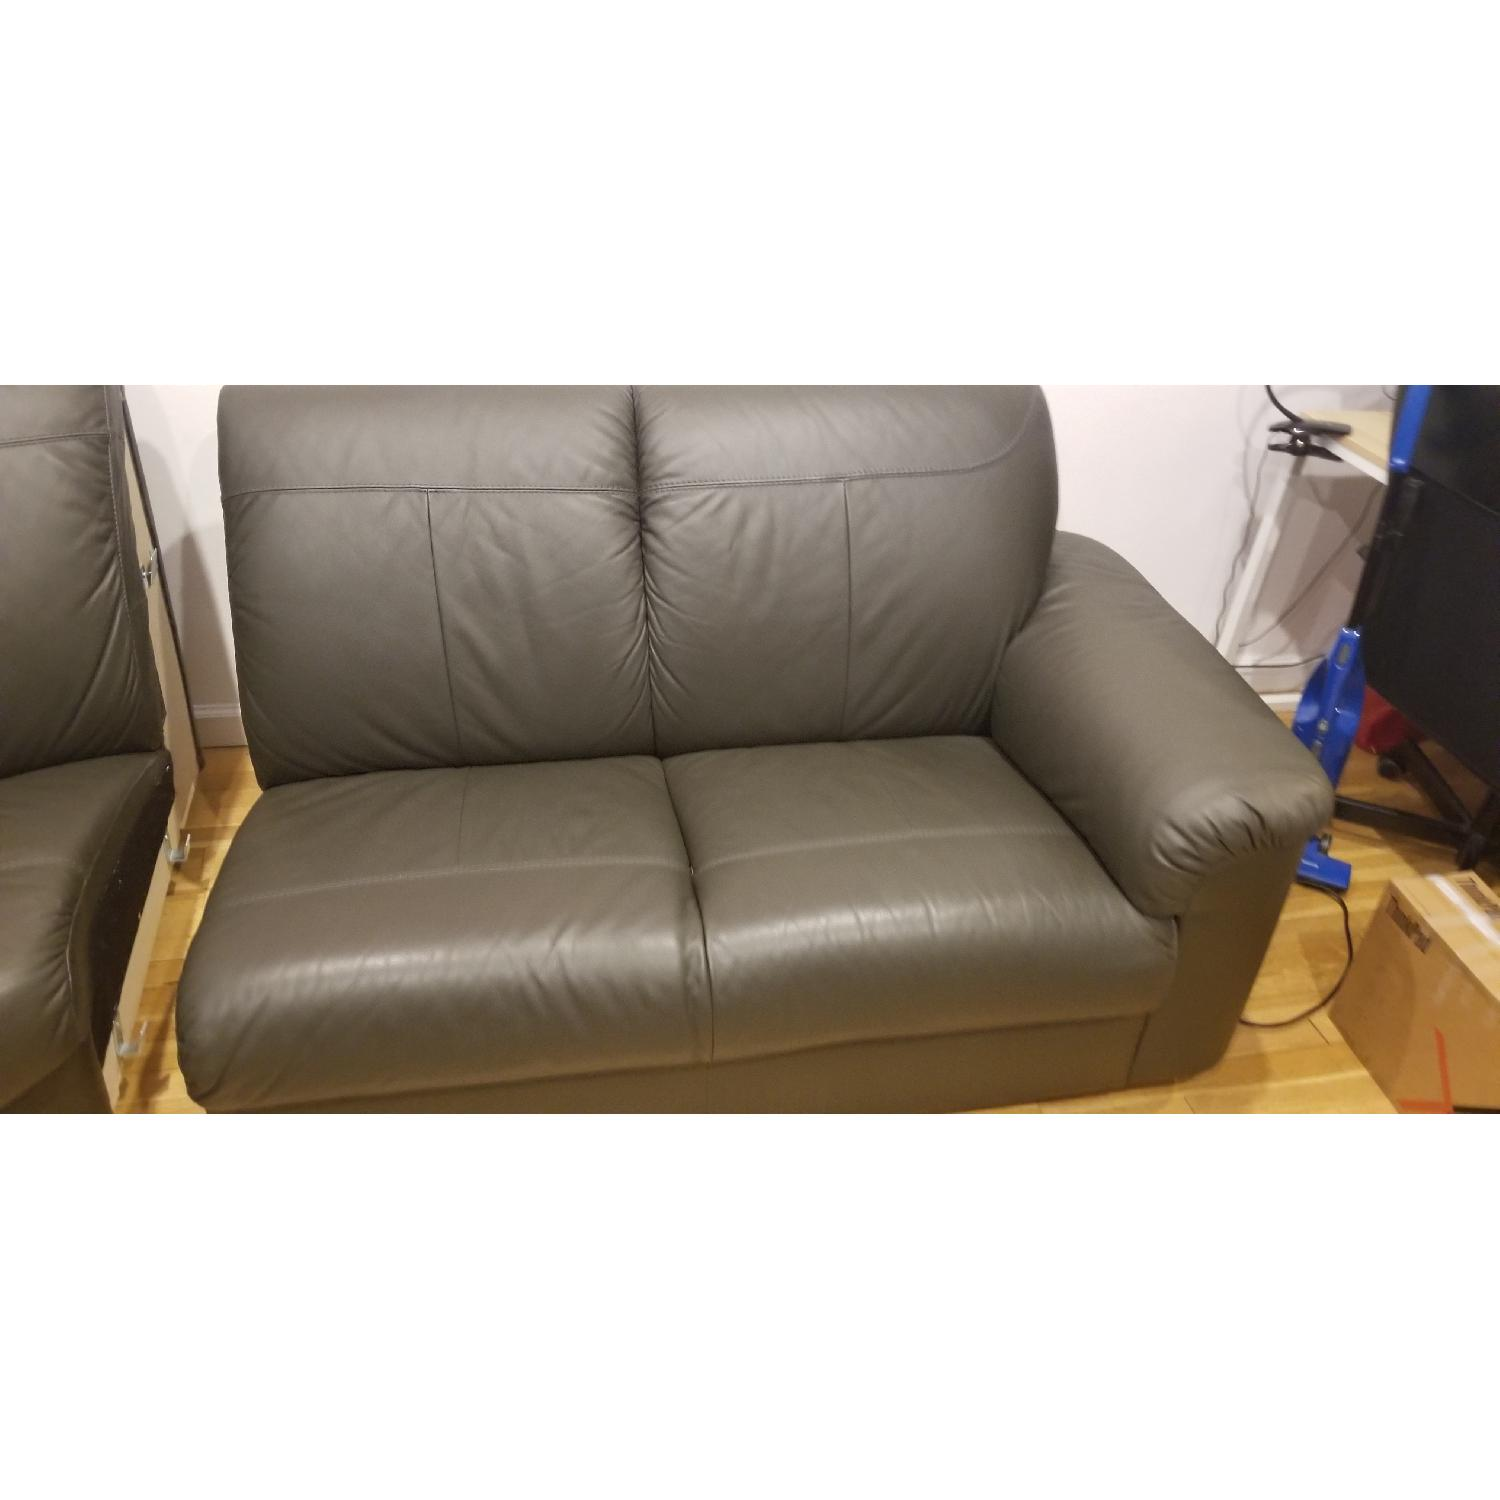 Ikea Timsfors Faux Leather Sectional Sofa - image-18